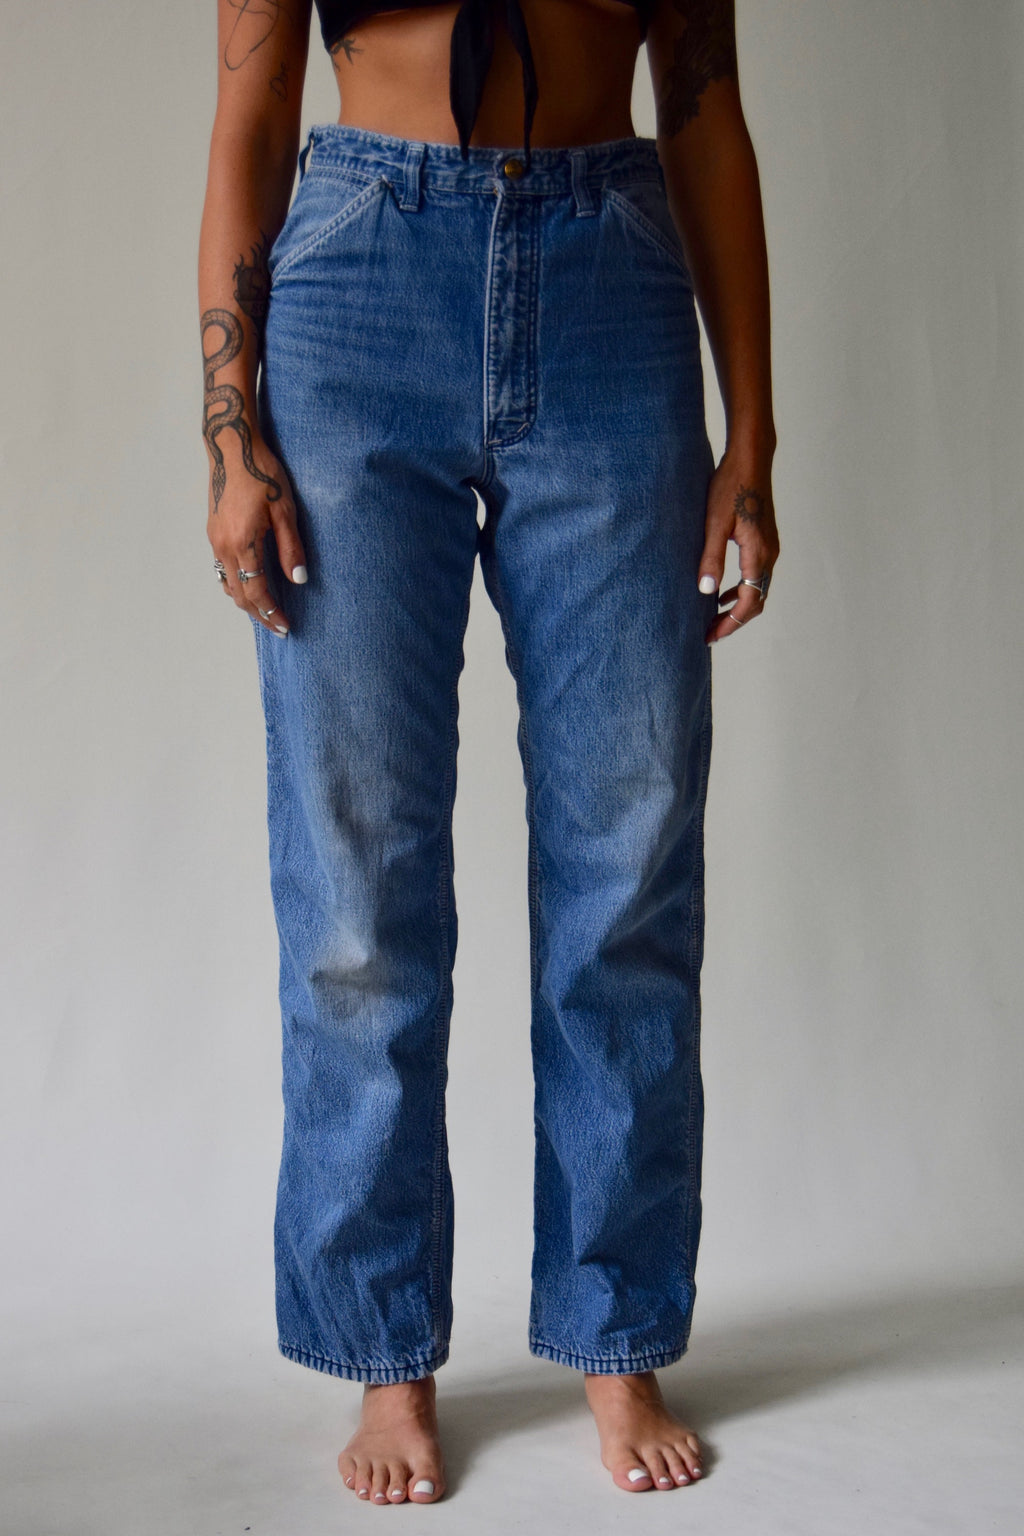 Vintage Carhartt Carpenter Jeans